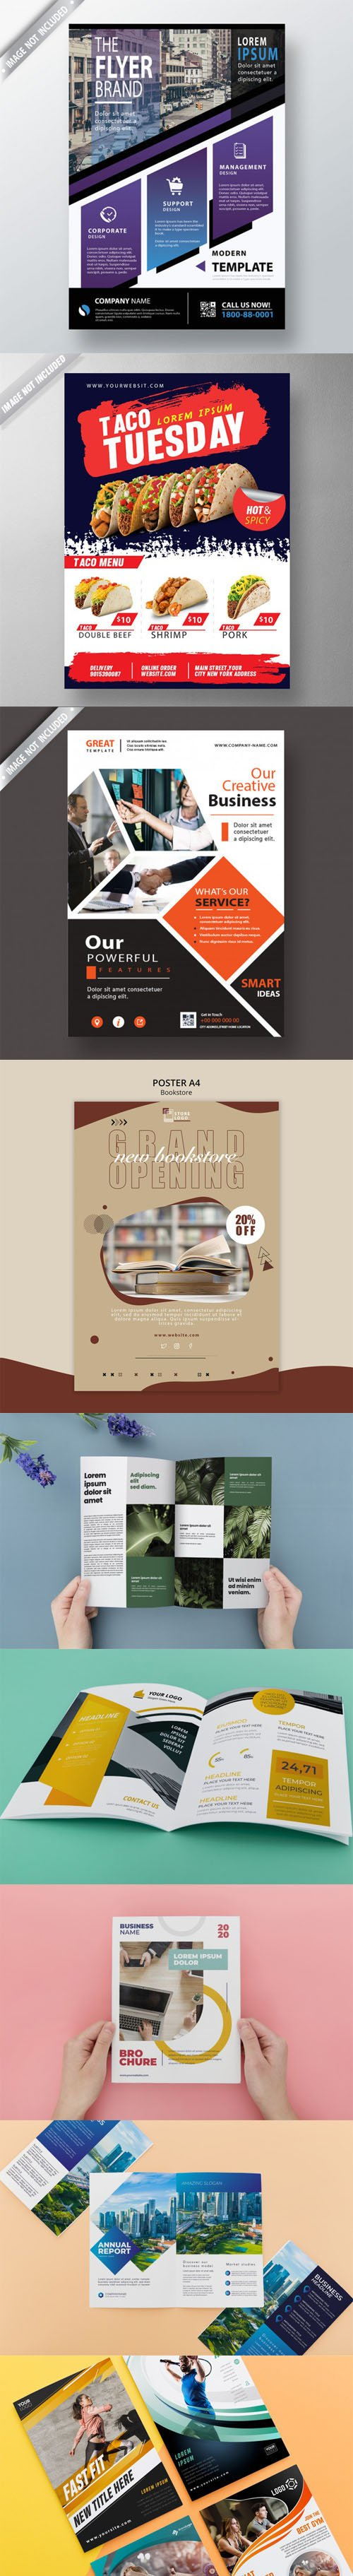 9 Multipurpose Brochures & Flyers PSD Mockups Templates Collection